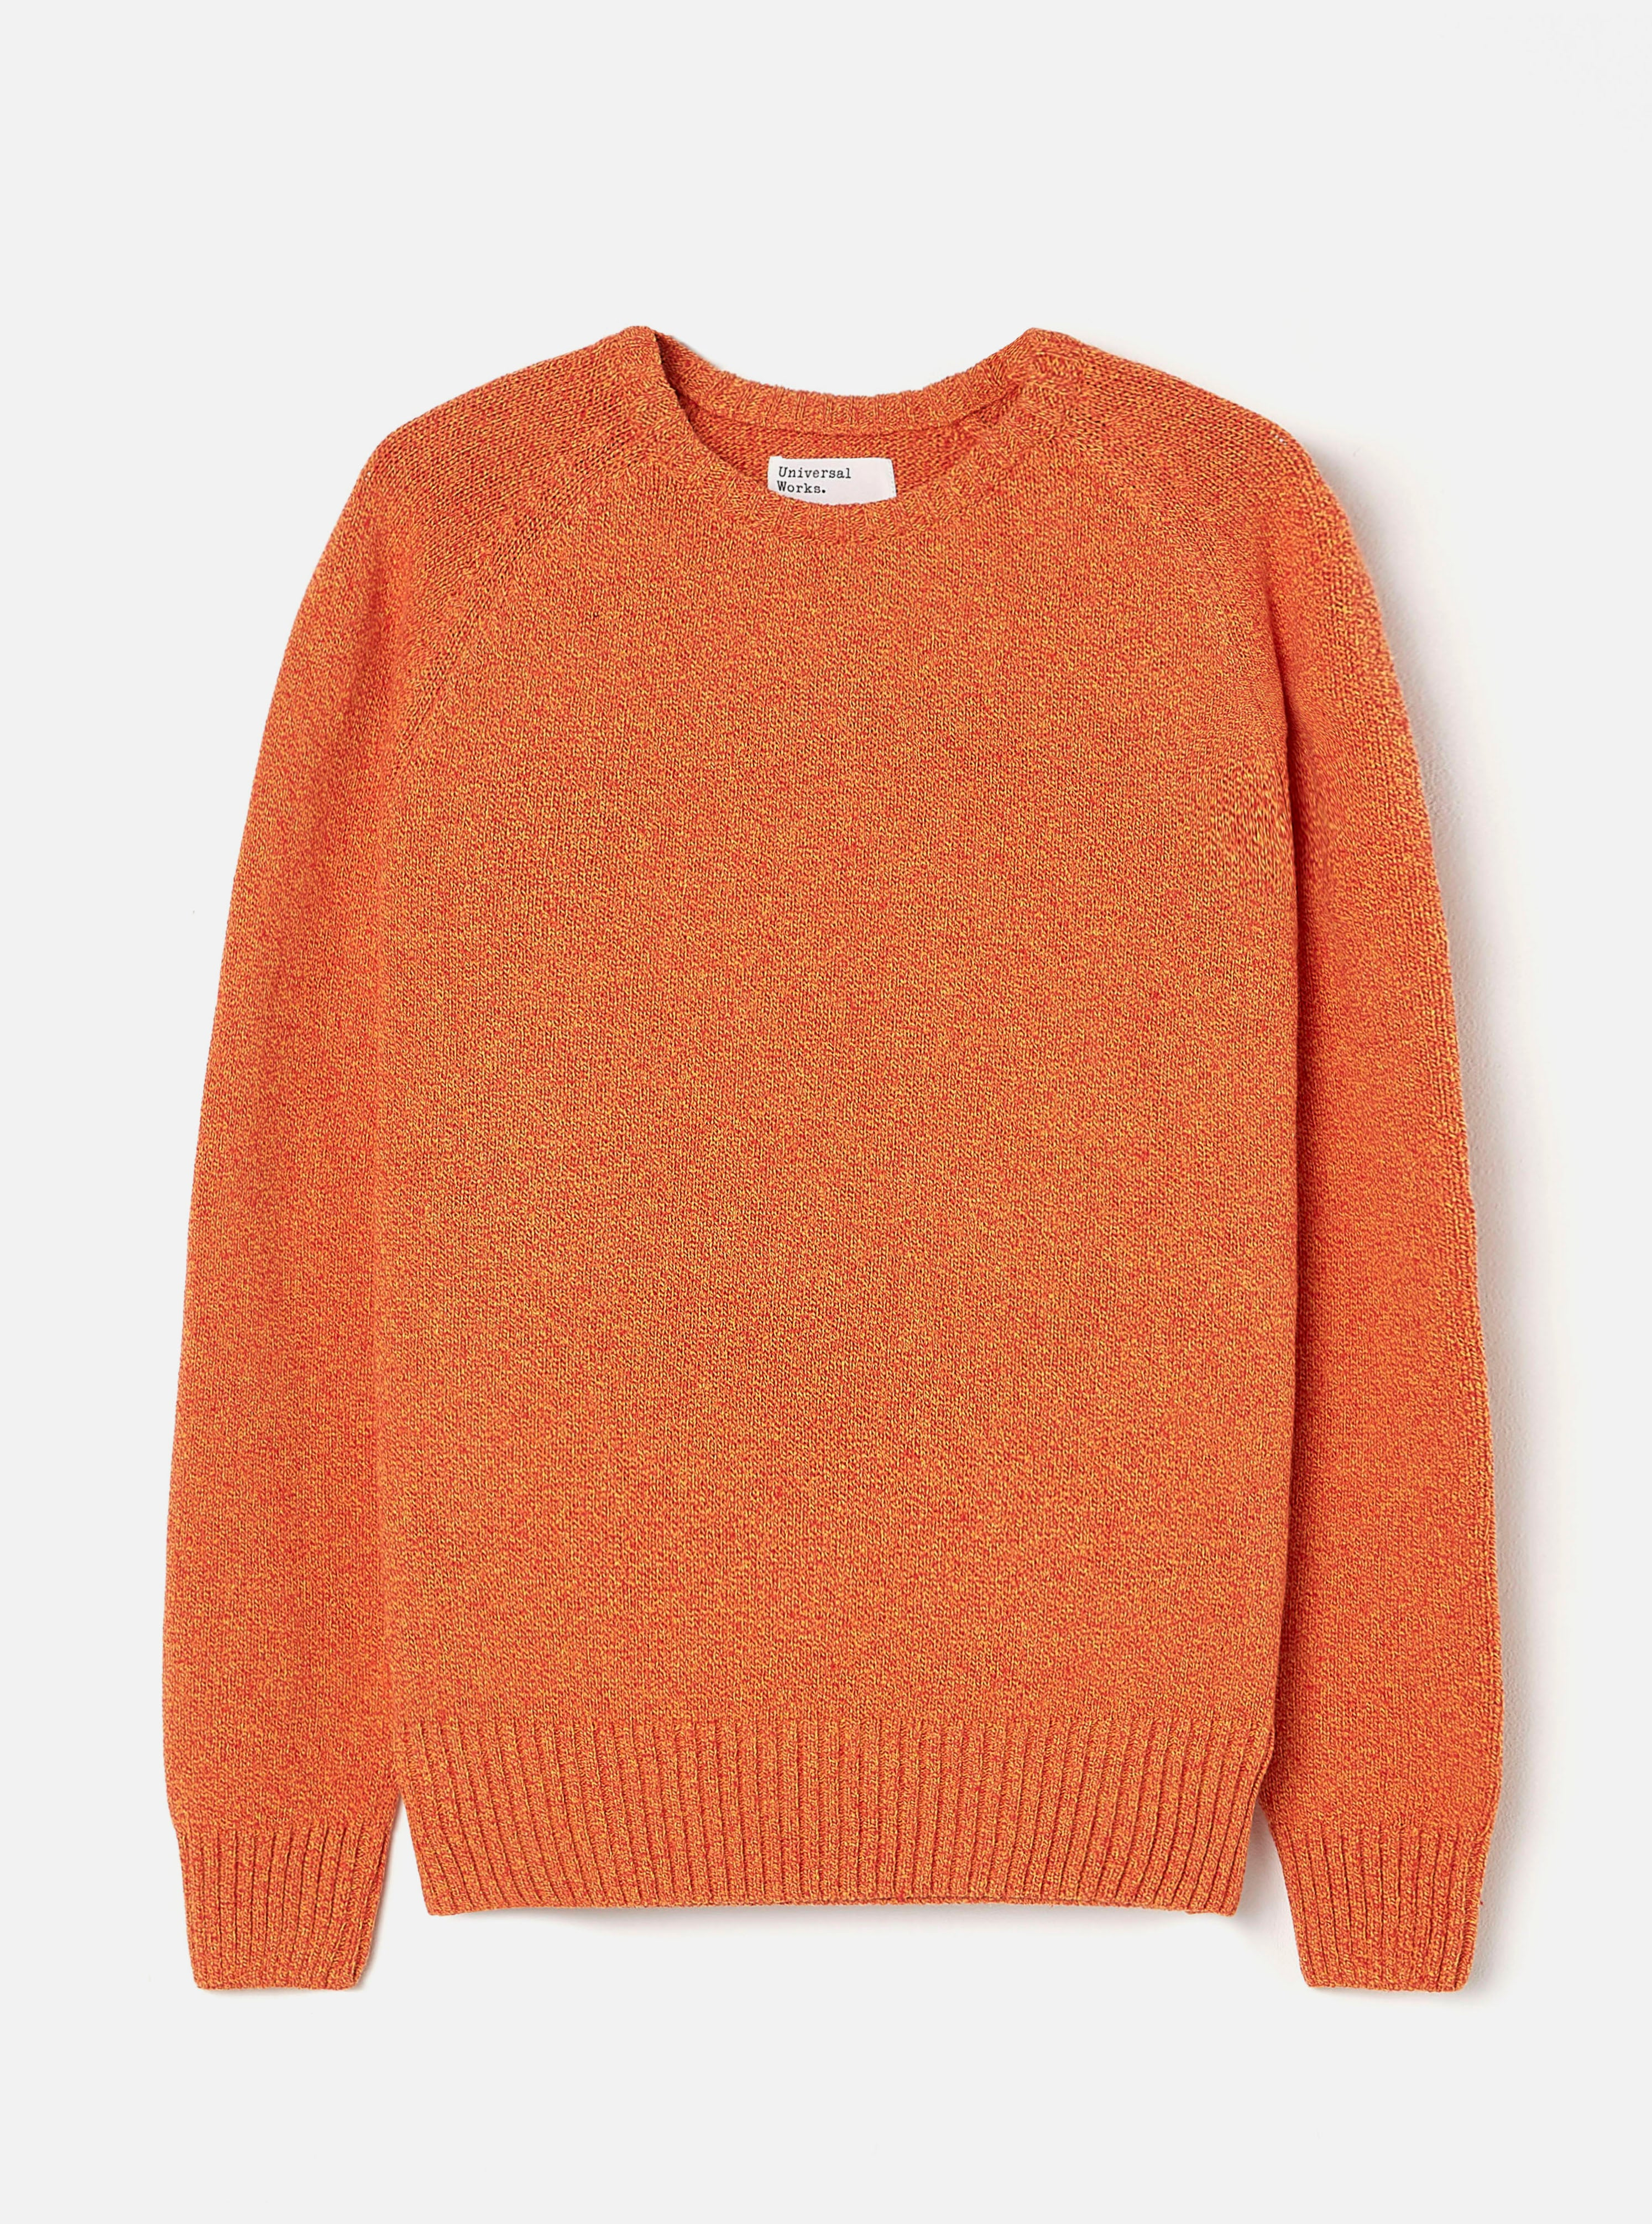 Universal Works Light Crew in Orange Eco Cotton Knit